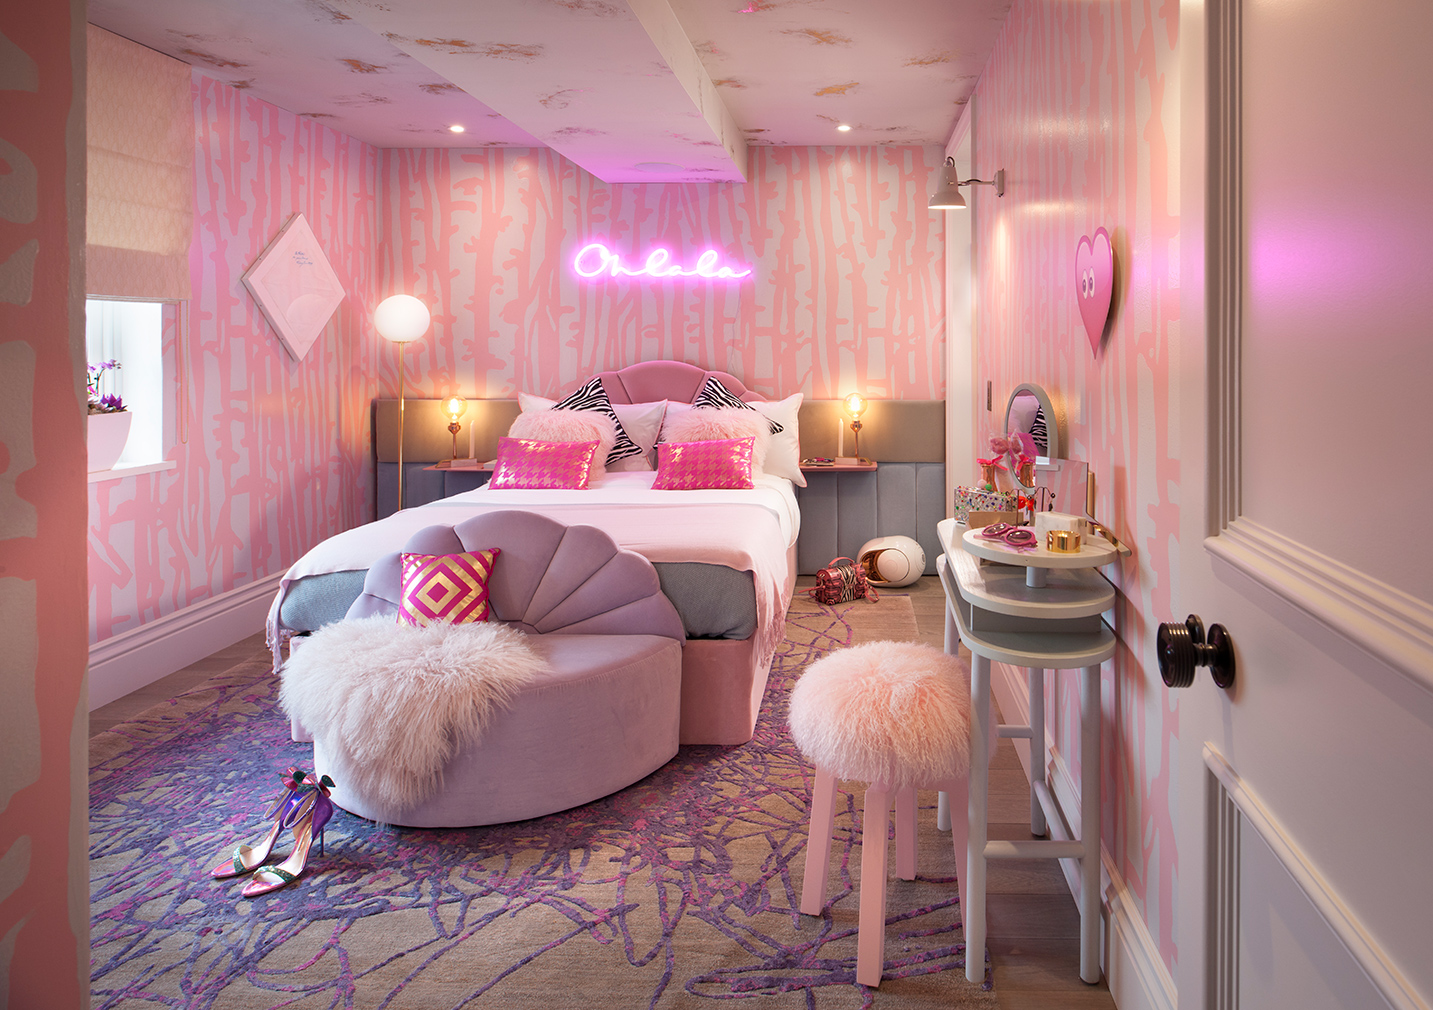 Teenage Dream Bedroom by Studio Suss at Holiday House London. Courtesy of Studio Suss